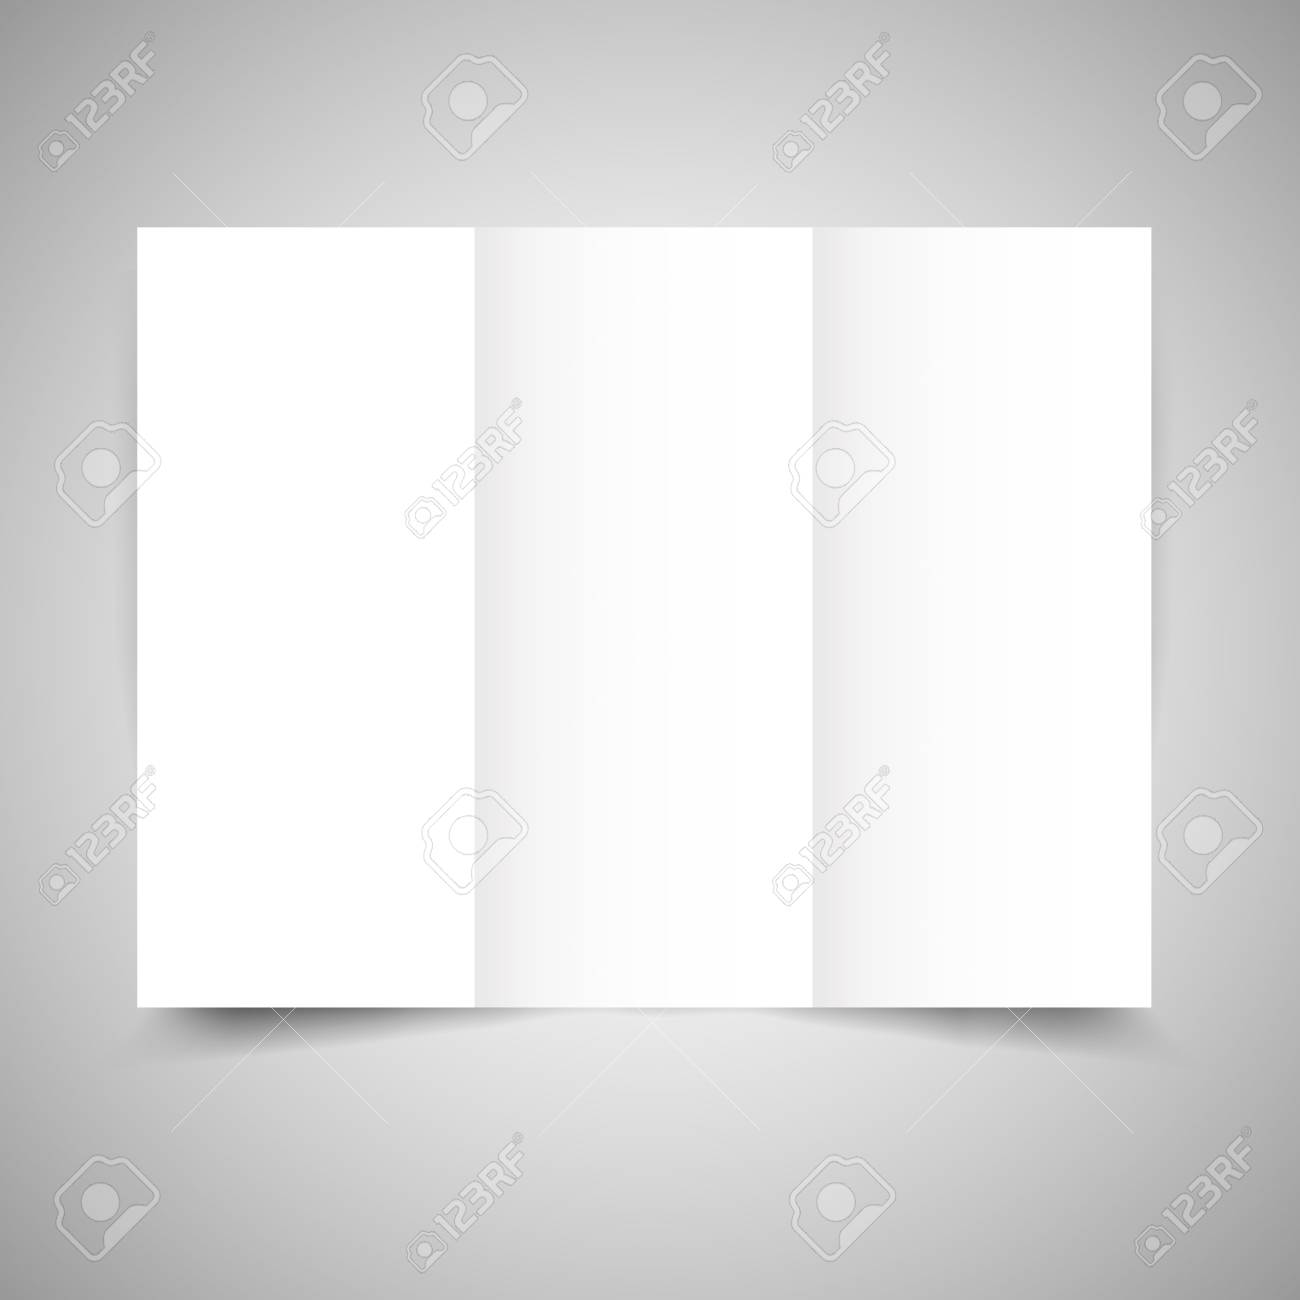 blank tri fold paper brochure design template with soft shadows